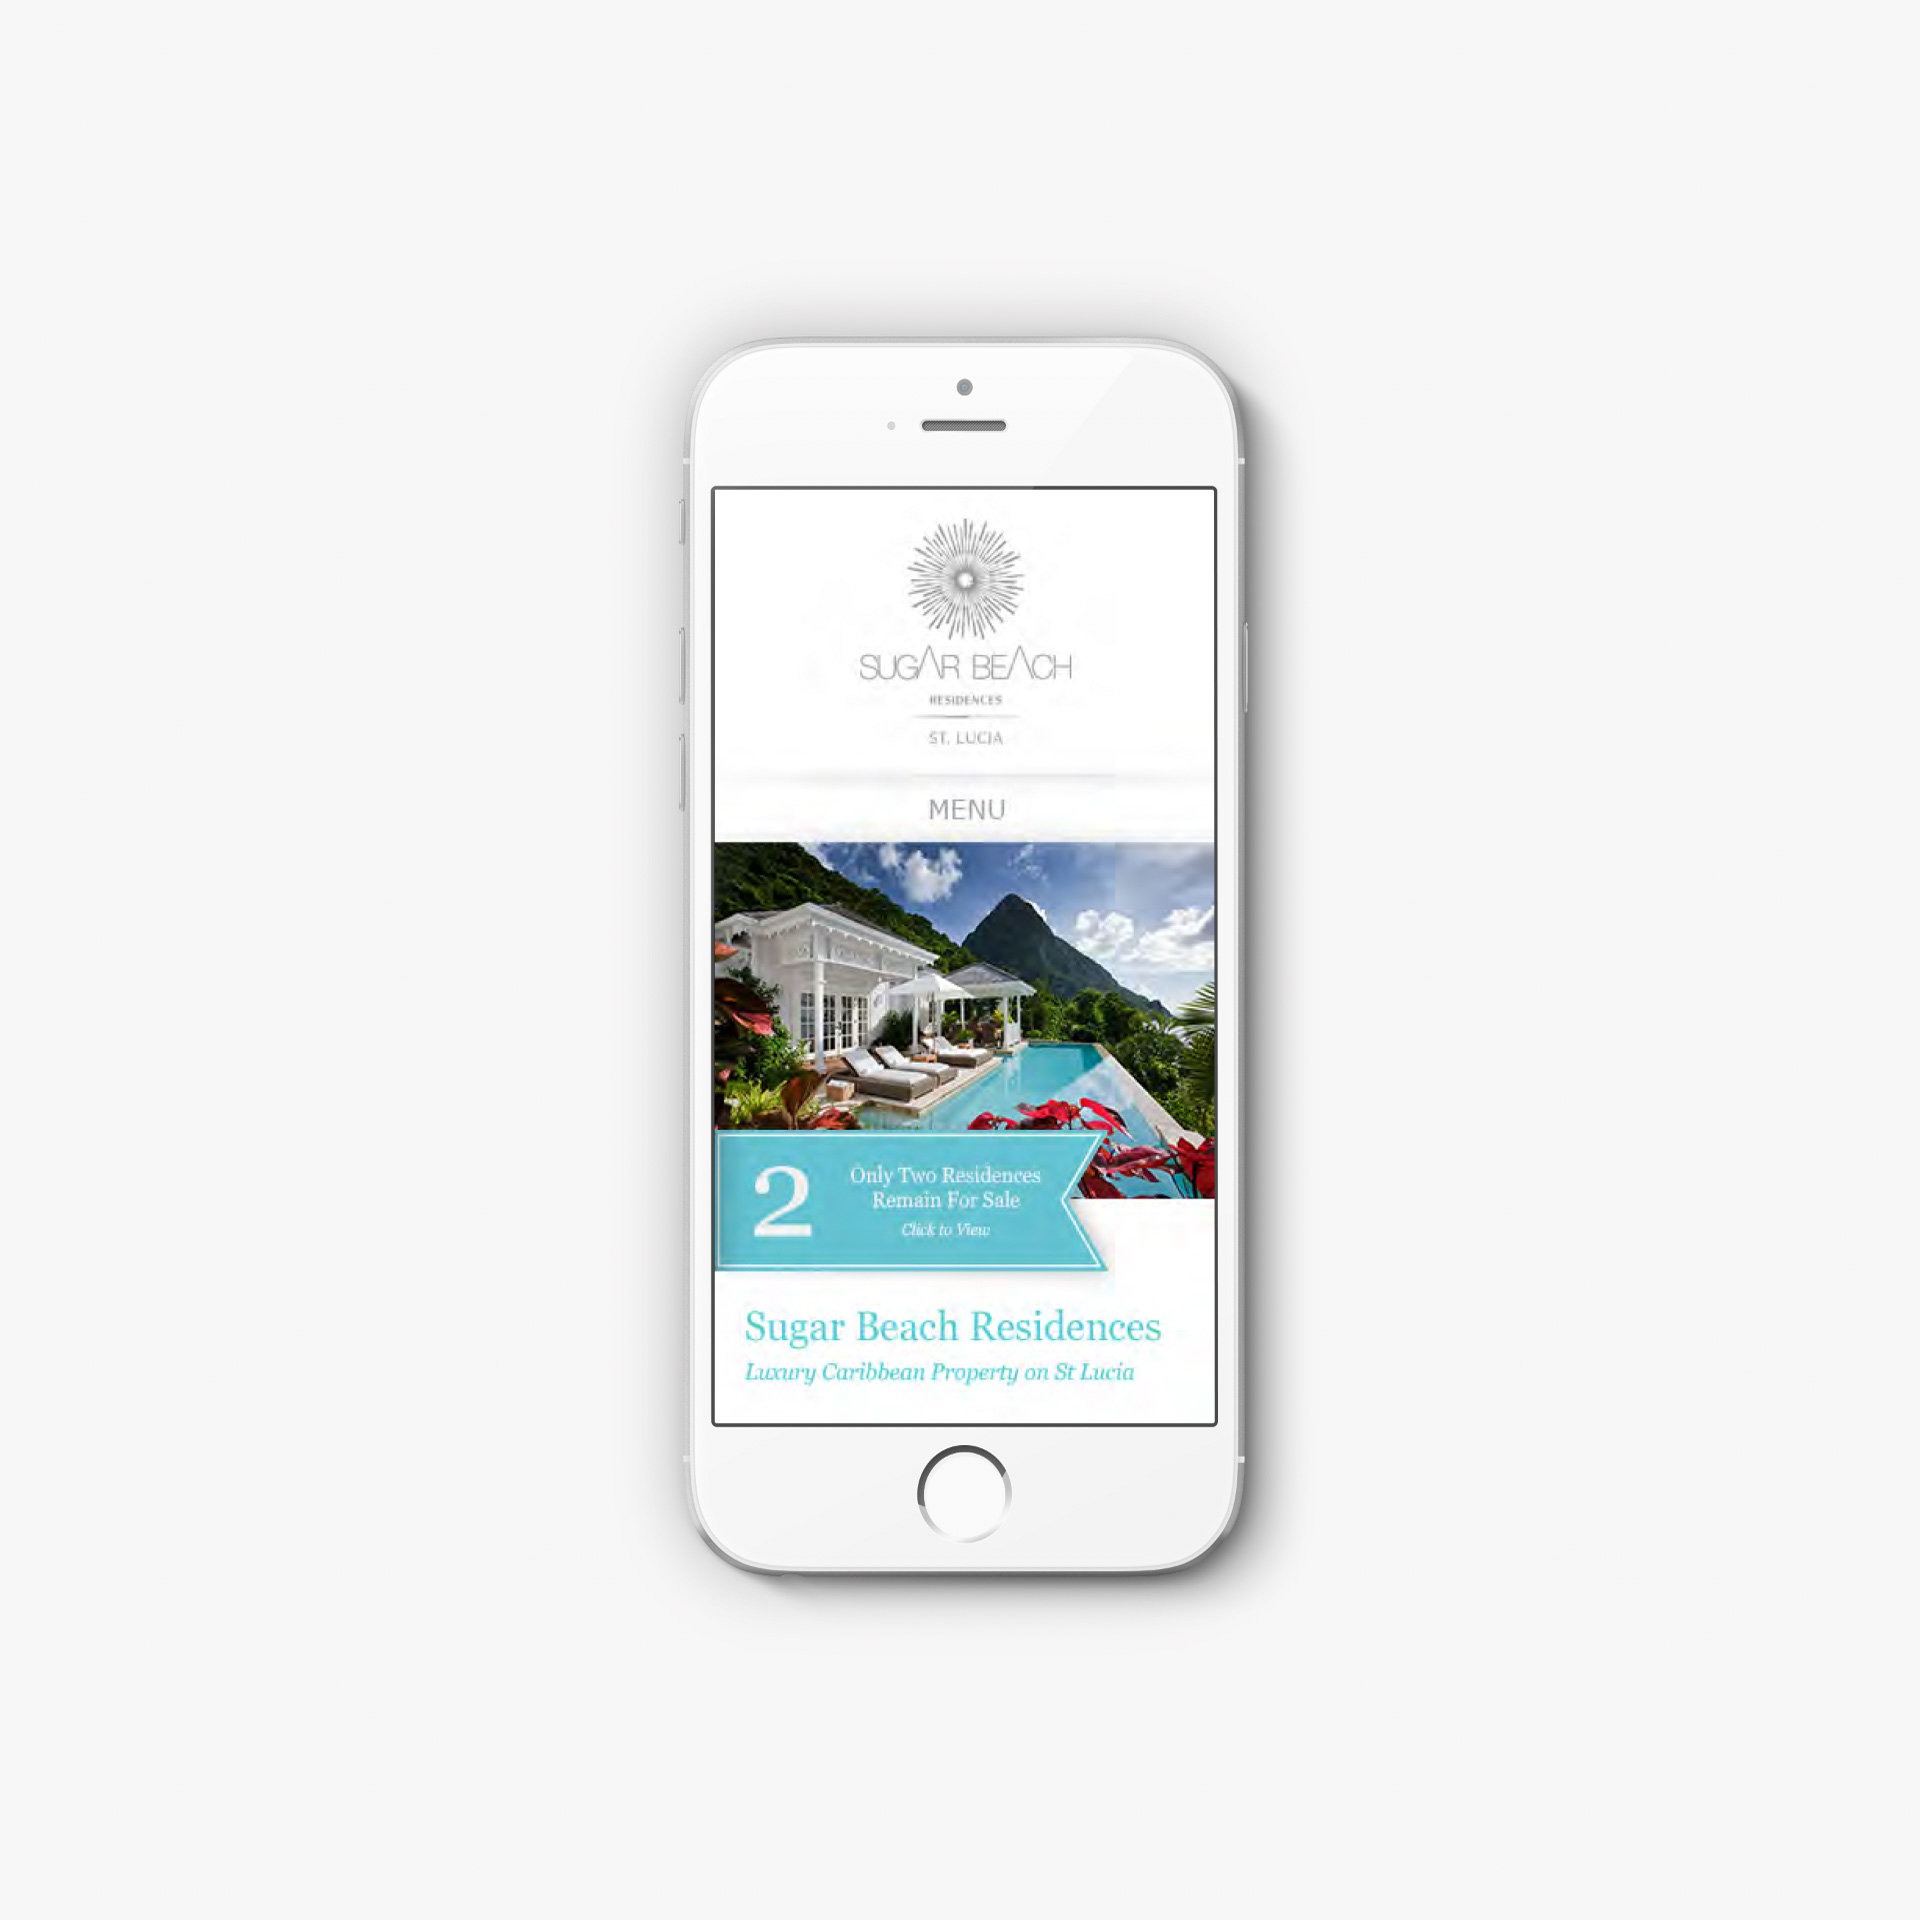 Sugar Beach Residences | Luxury Property Marketing | iPhone Showing Responsive Website